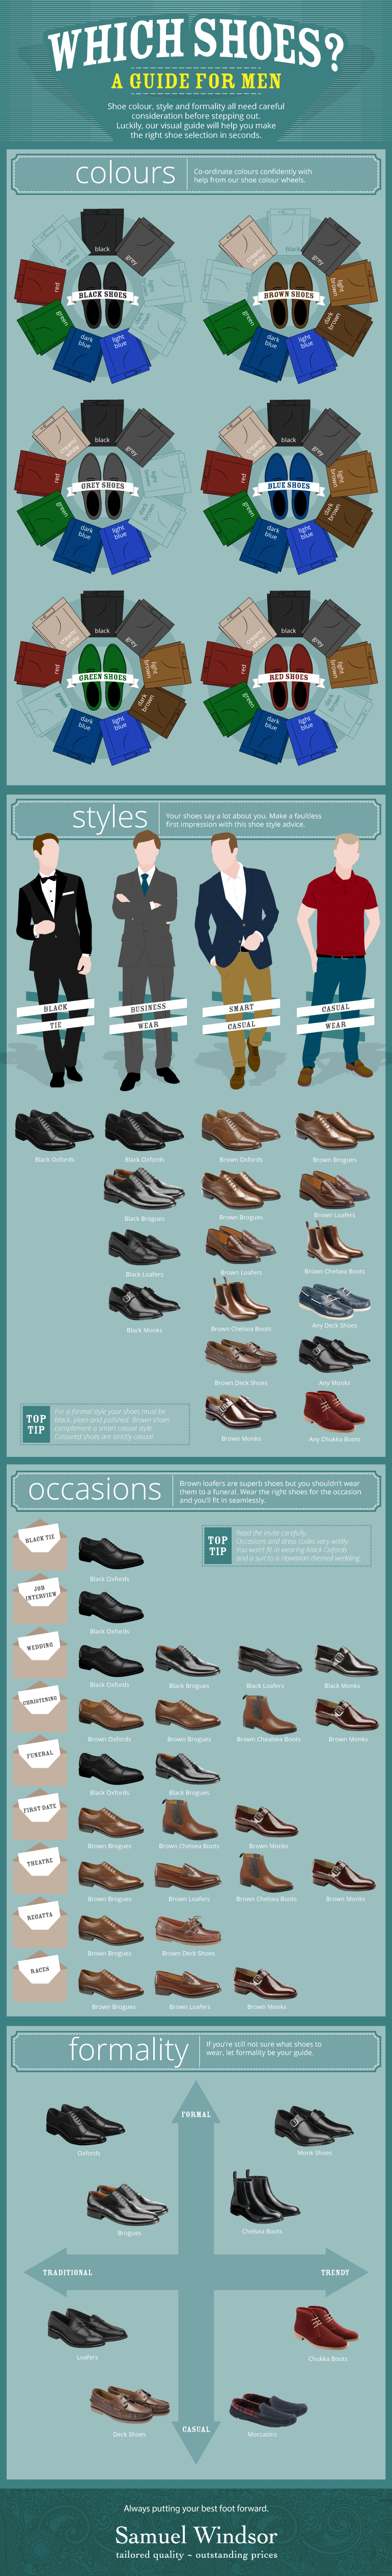 A Shoe-Selecting Guide For Men - Infographic